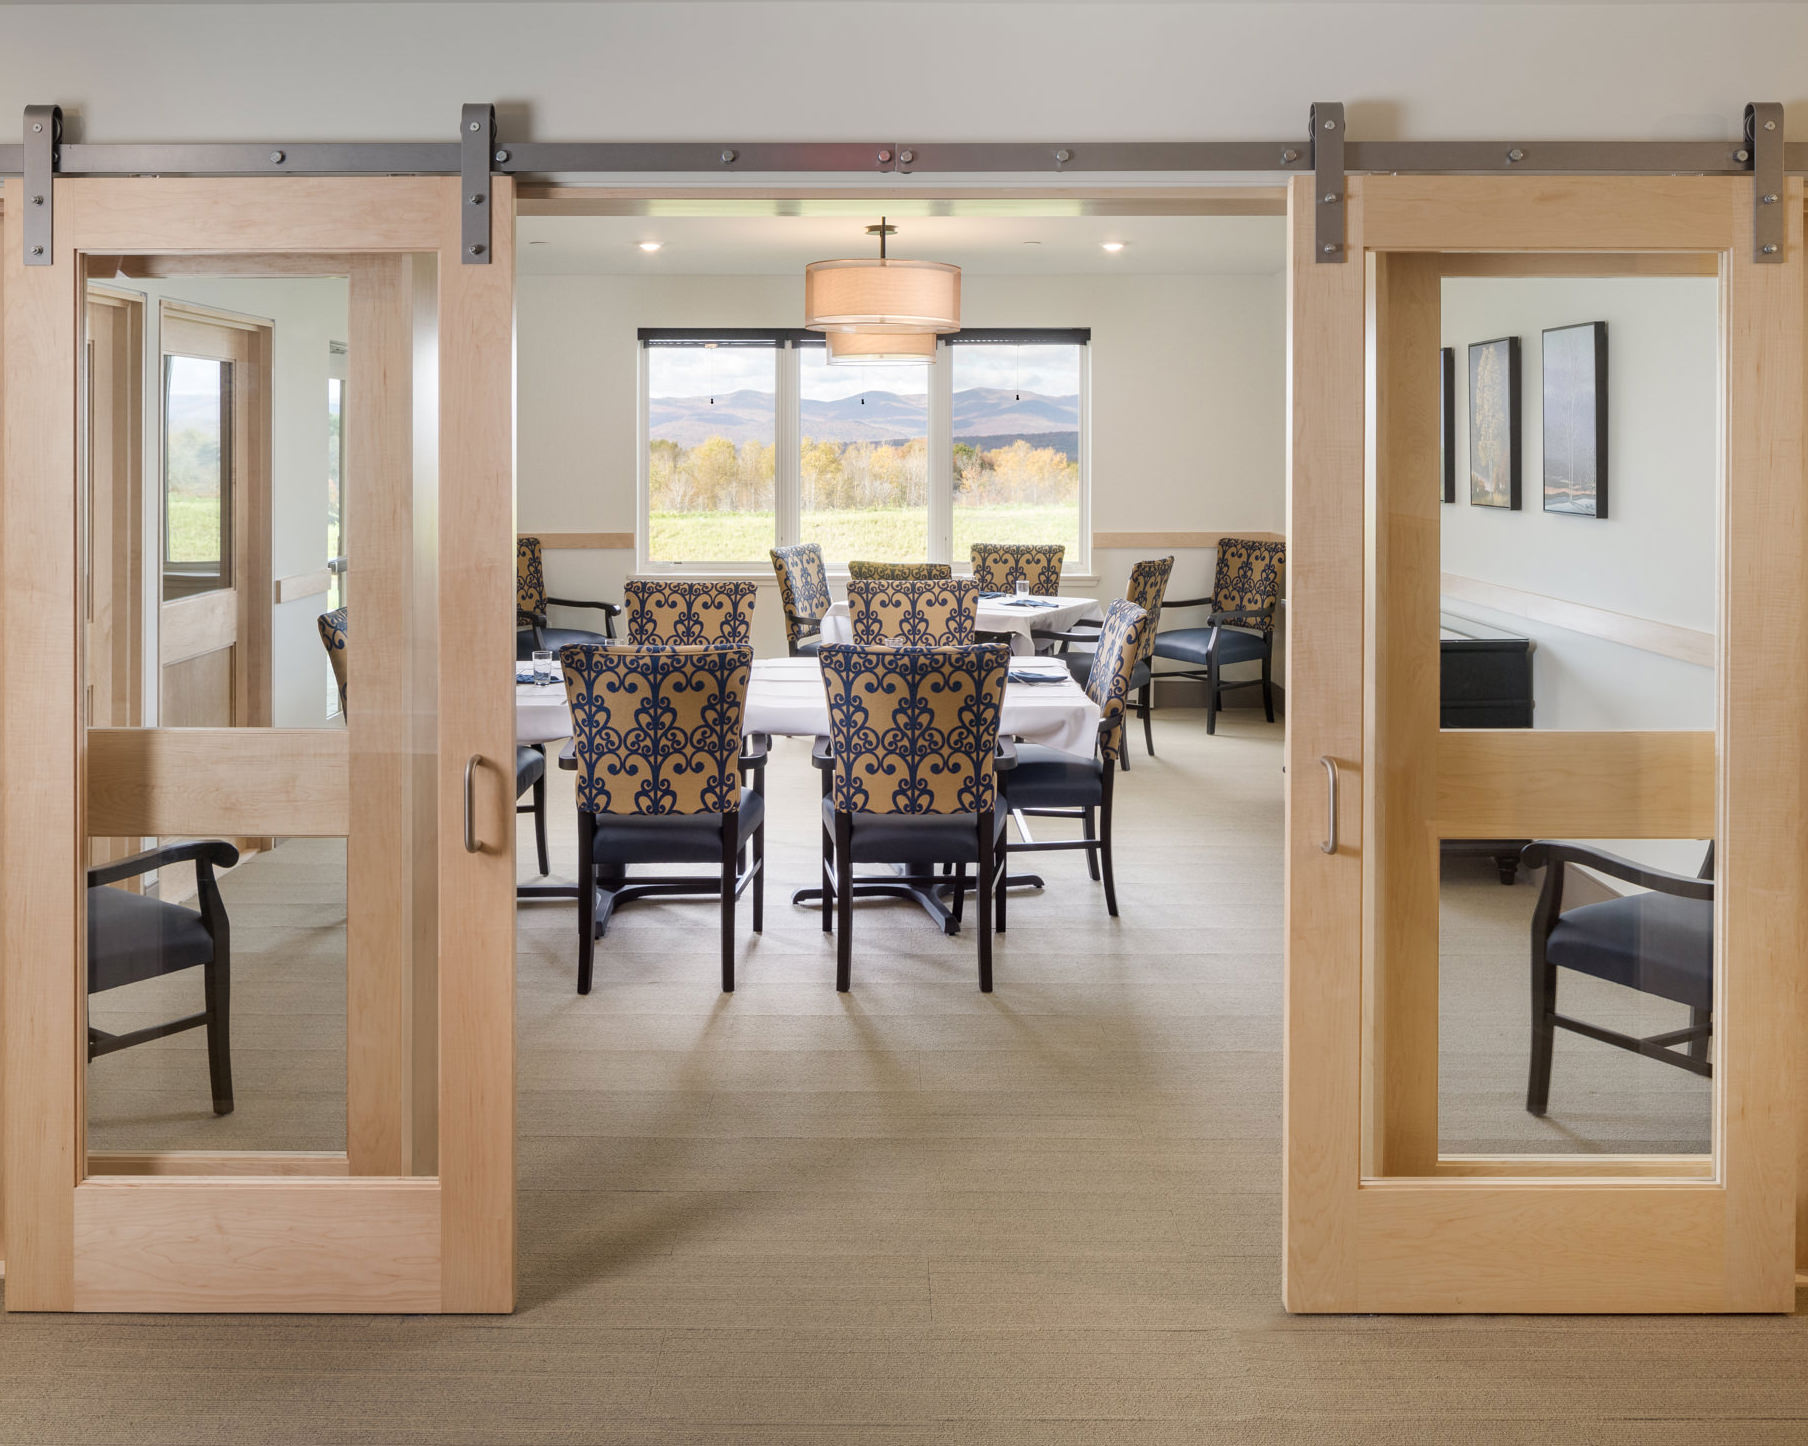 A photo of the private dining room in the Strode Independent Living facility by Vermont professional photographer Stina Booth